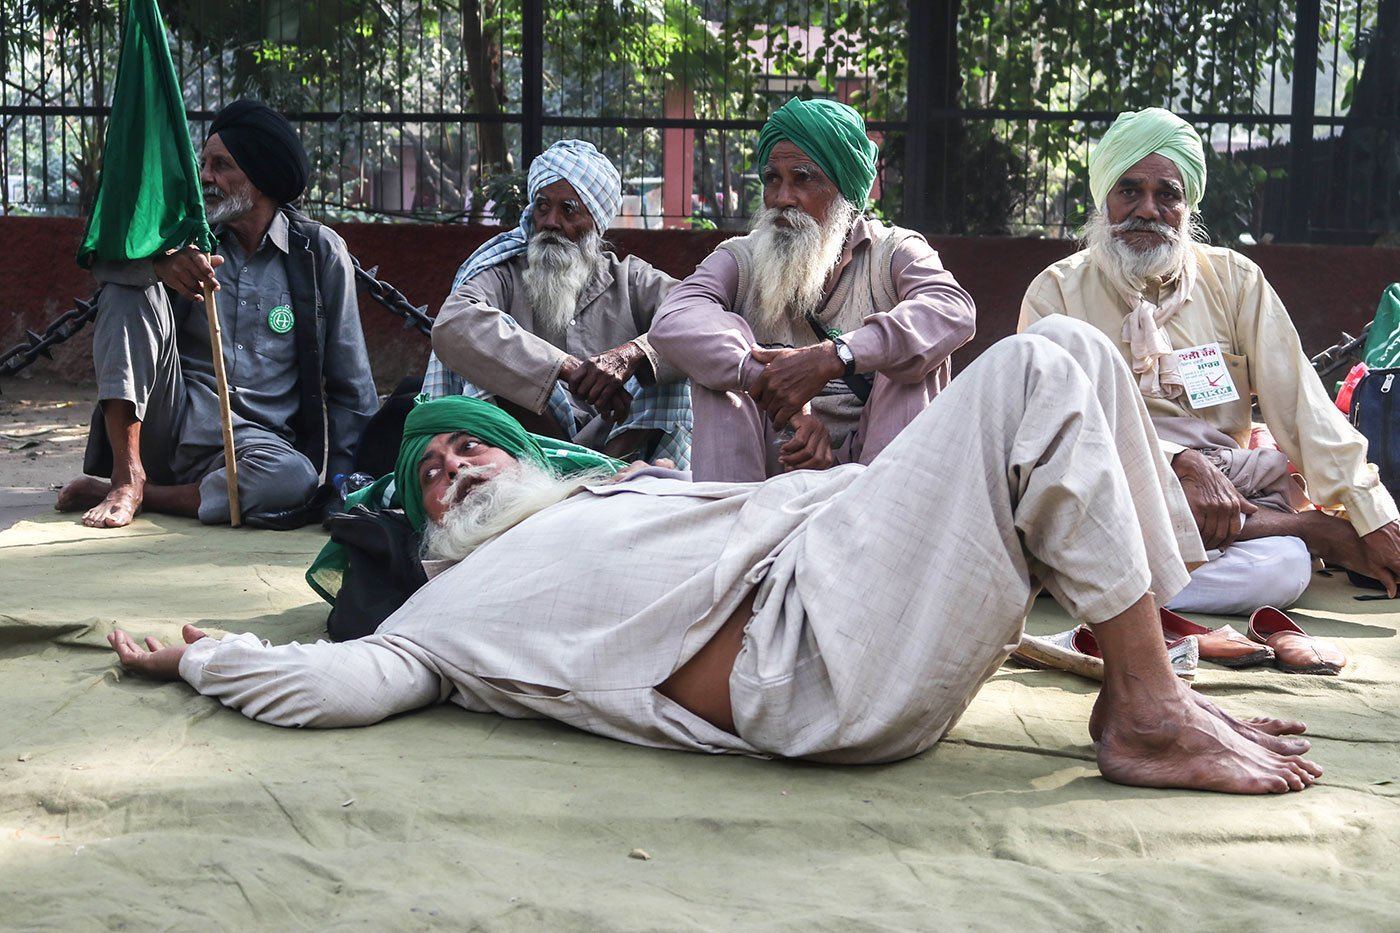 Farmers from rural Punjab resting at the Parliament Street